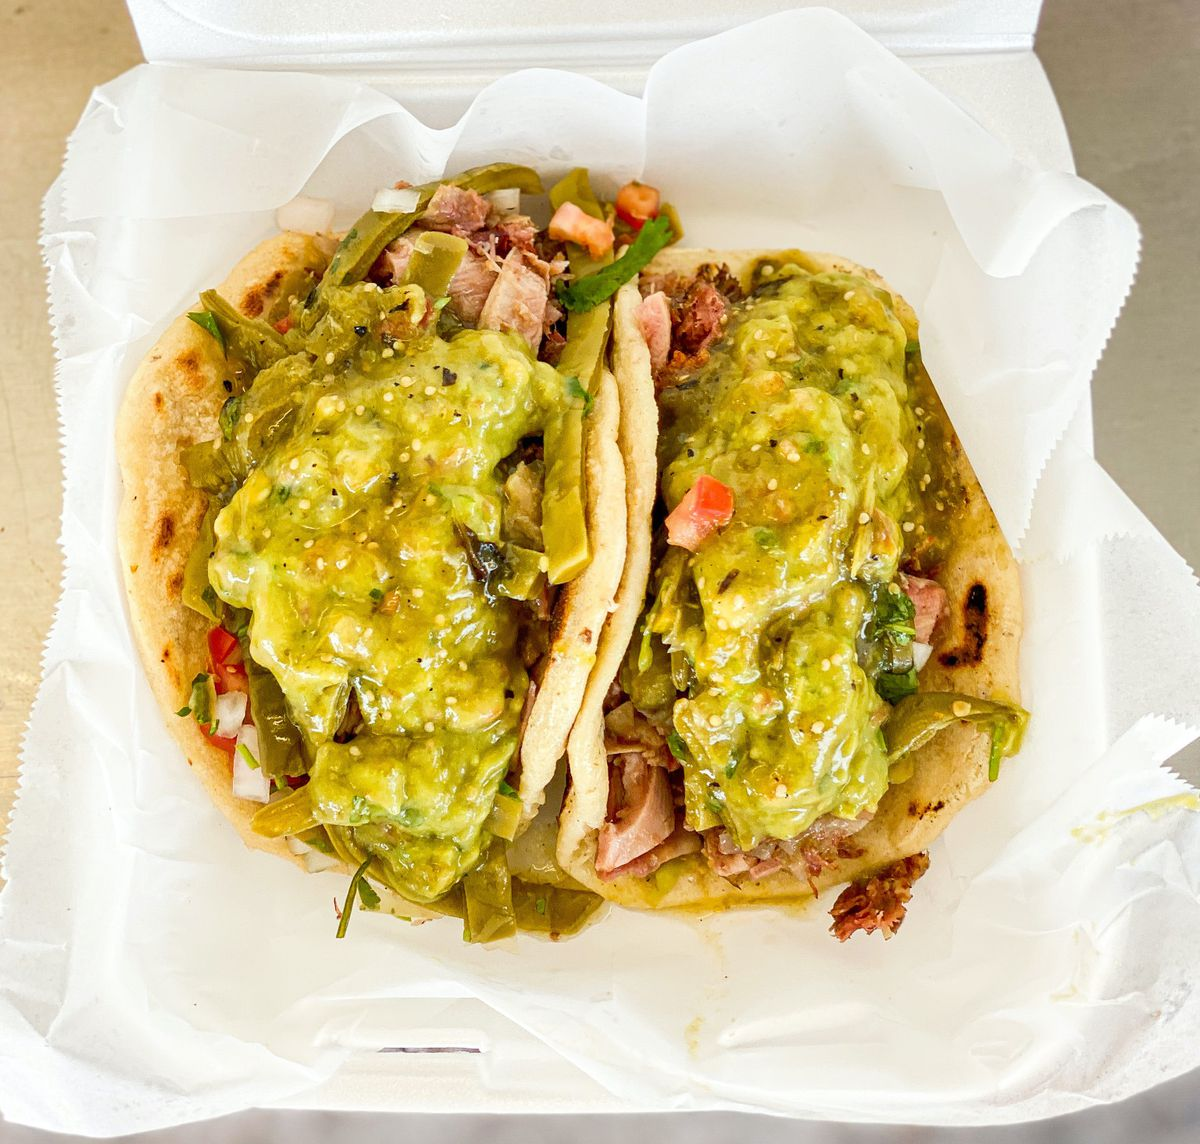 For the kind of comforting LA tacos that never get old: Los Cinco Puntos.